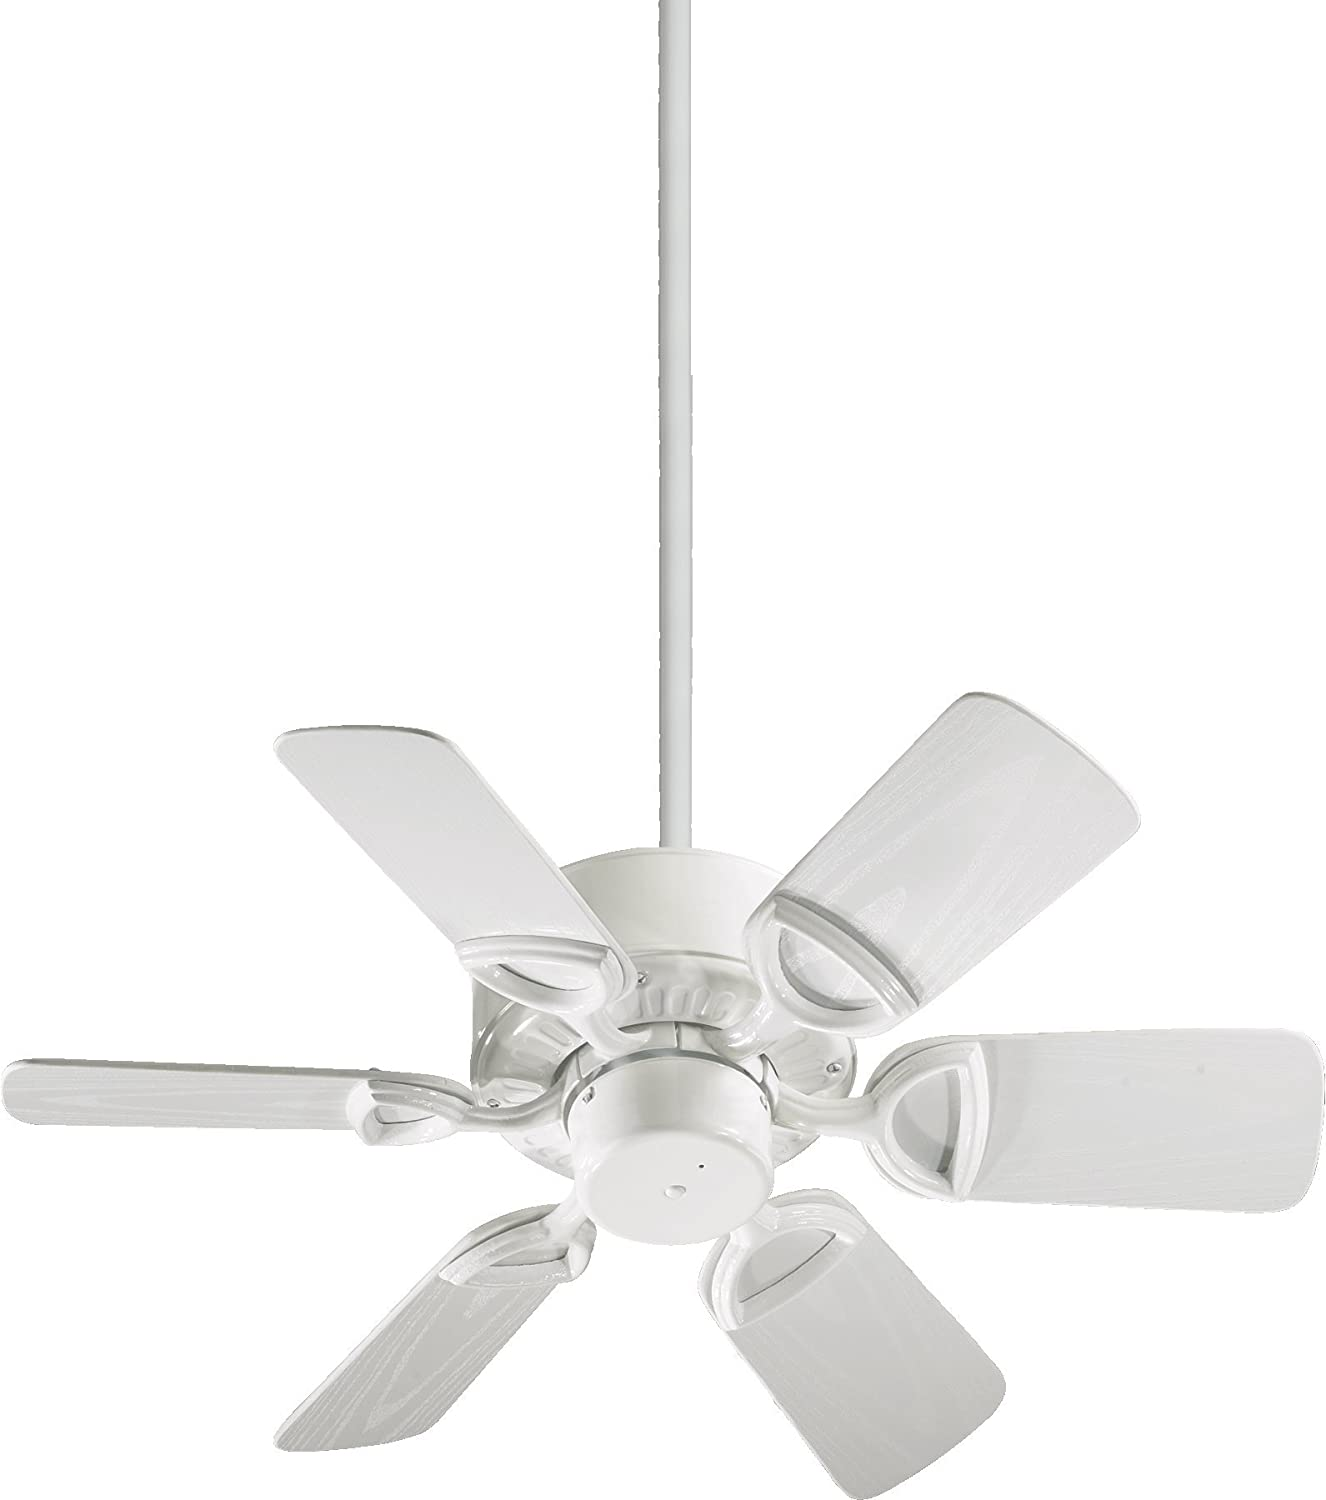 Quorum International 143306 6 Estate Blade Patio Ceiling Fan With White ABS Blades 30 Inch Gloss Finish